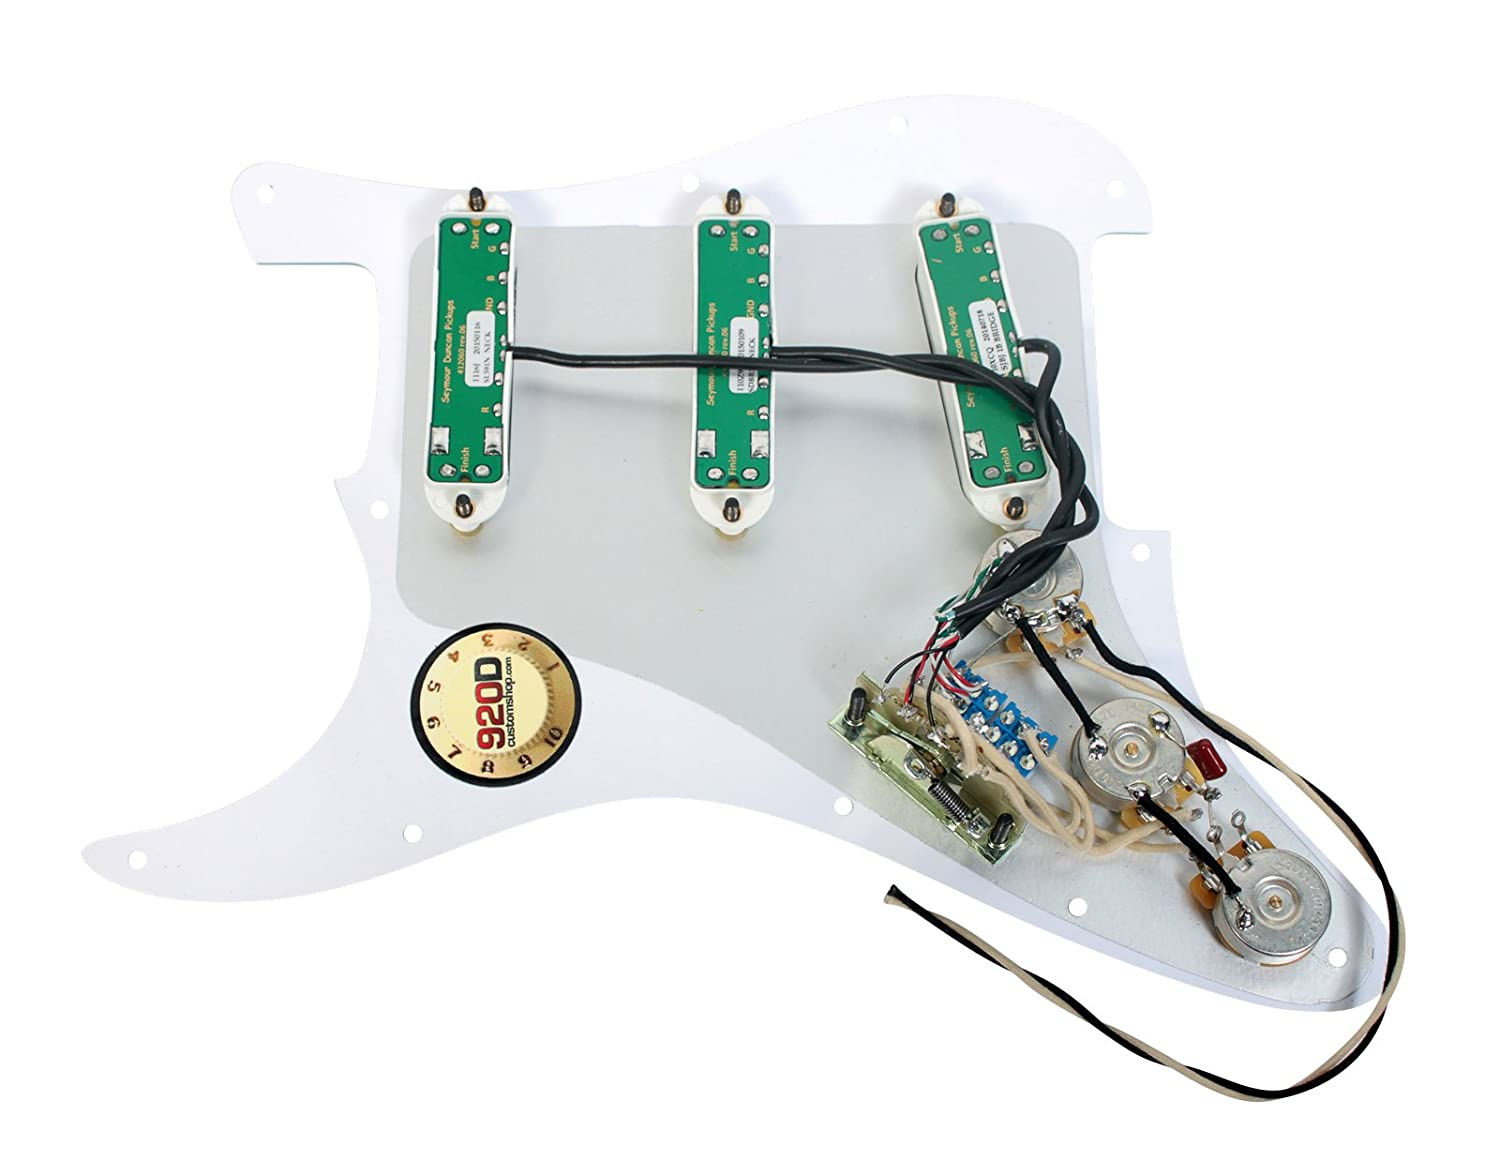 71LNIJvXYdL._SL1500_ amazon com seymour duncan sjbj sdbr sl59 loaded pickguard 920d wiring diagram at webbmarketing.co